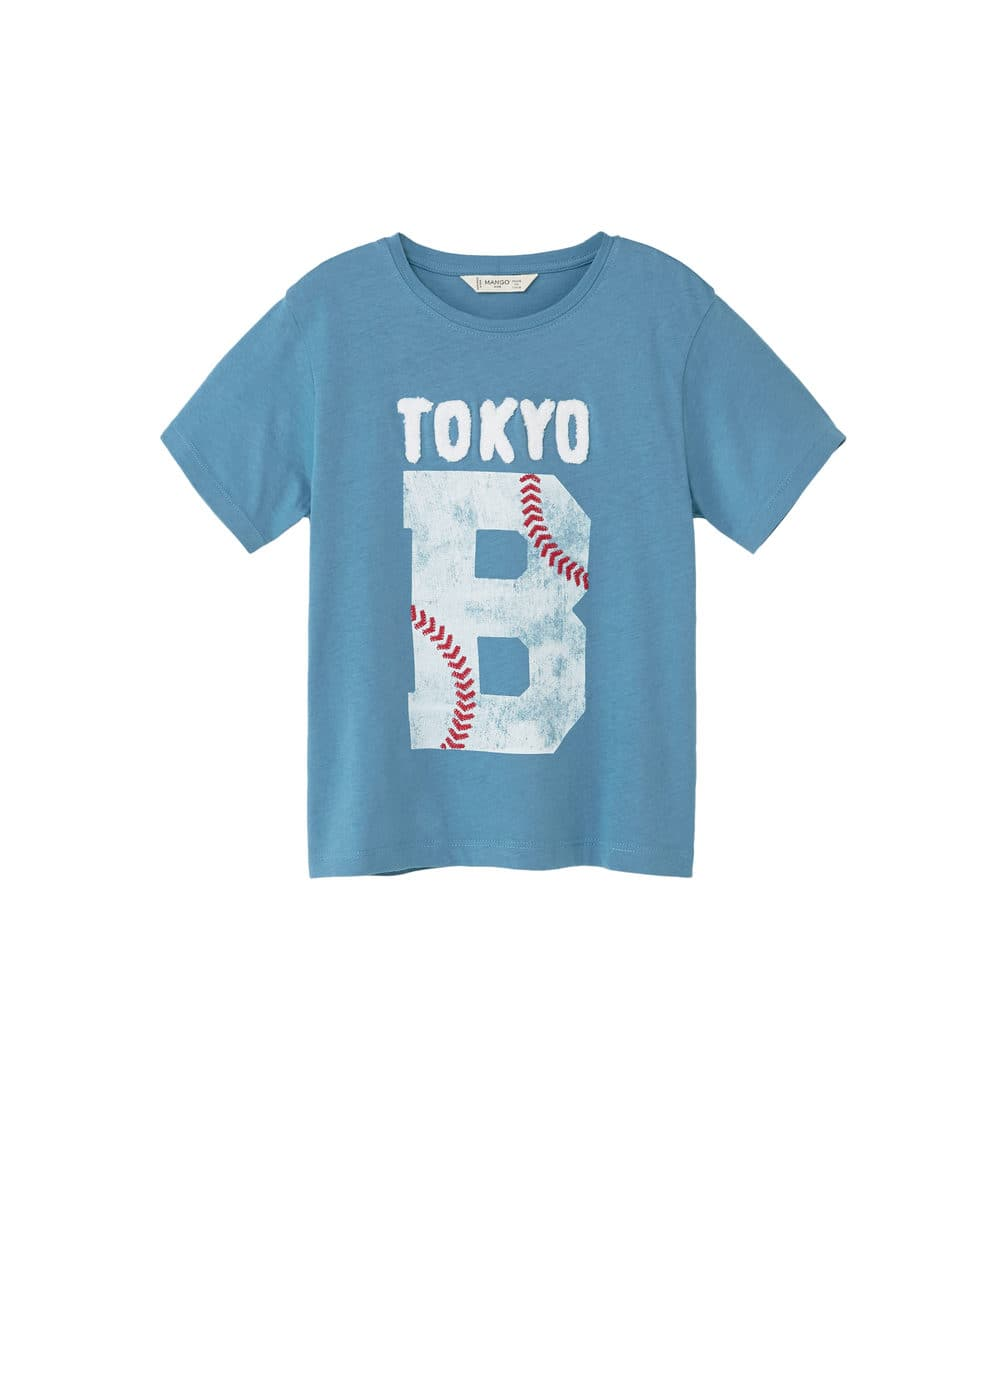 Design t shirt online singapore - Design T Shirt Online Singapore 39